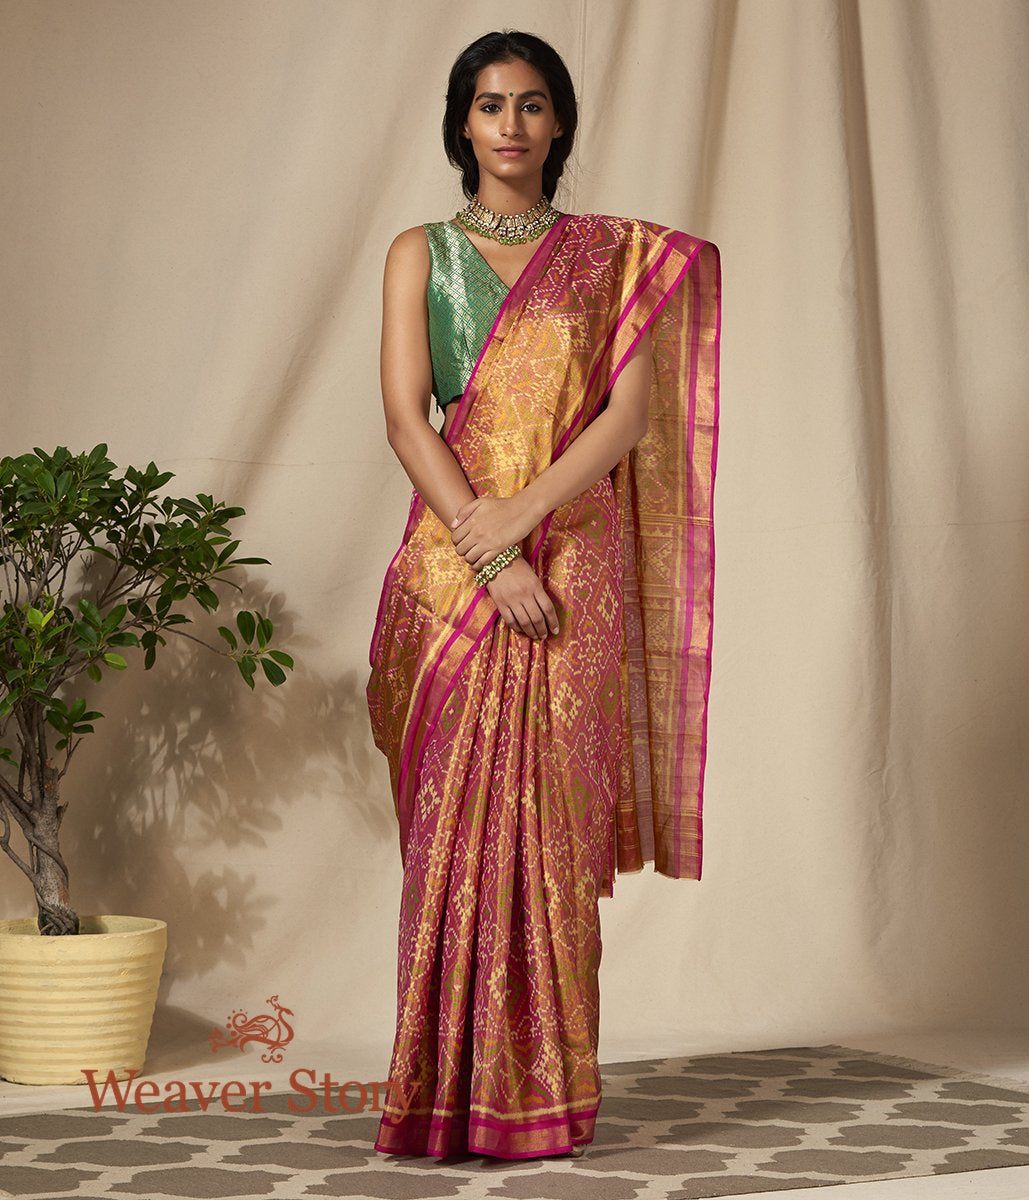 Handwoven Silk Tissue Gujarat Patola Saree in Gold and Pink